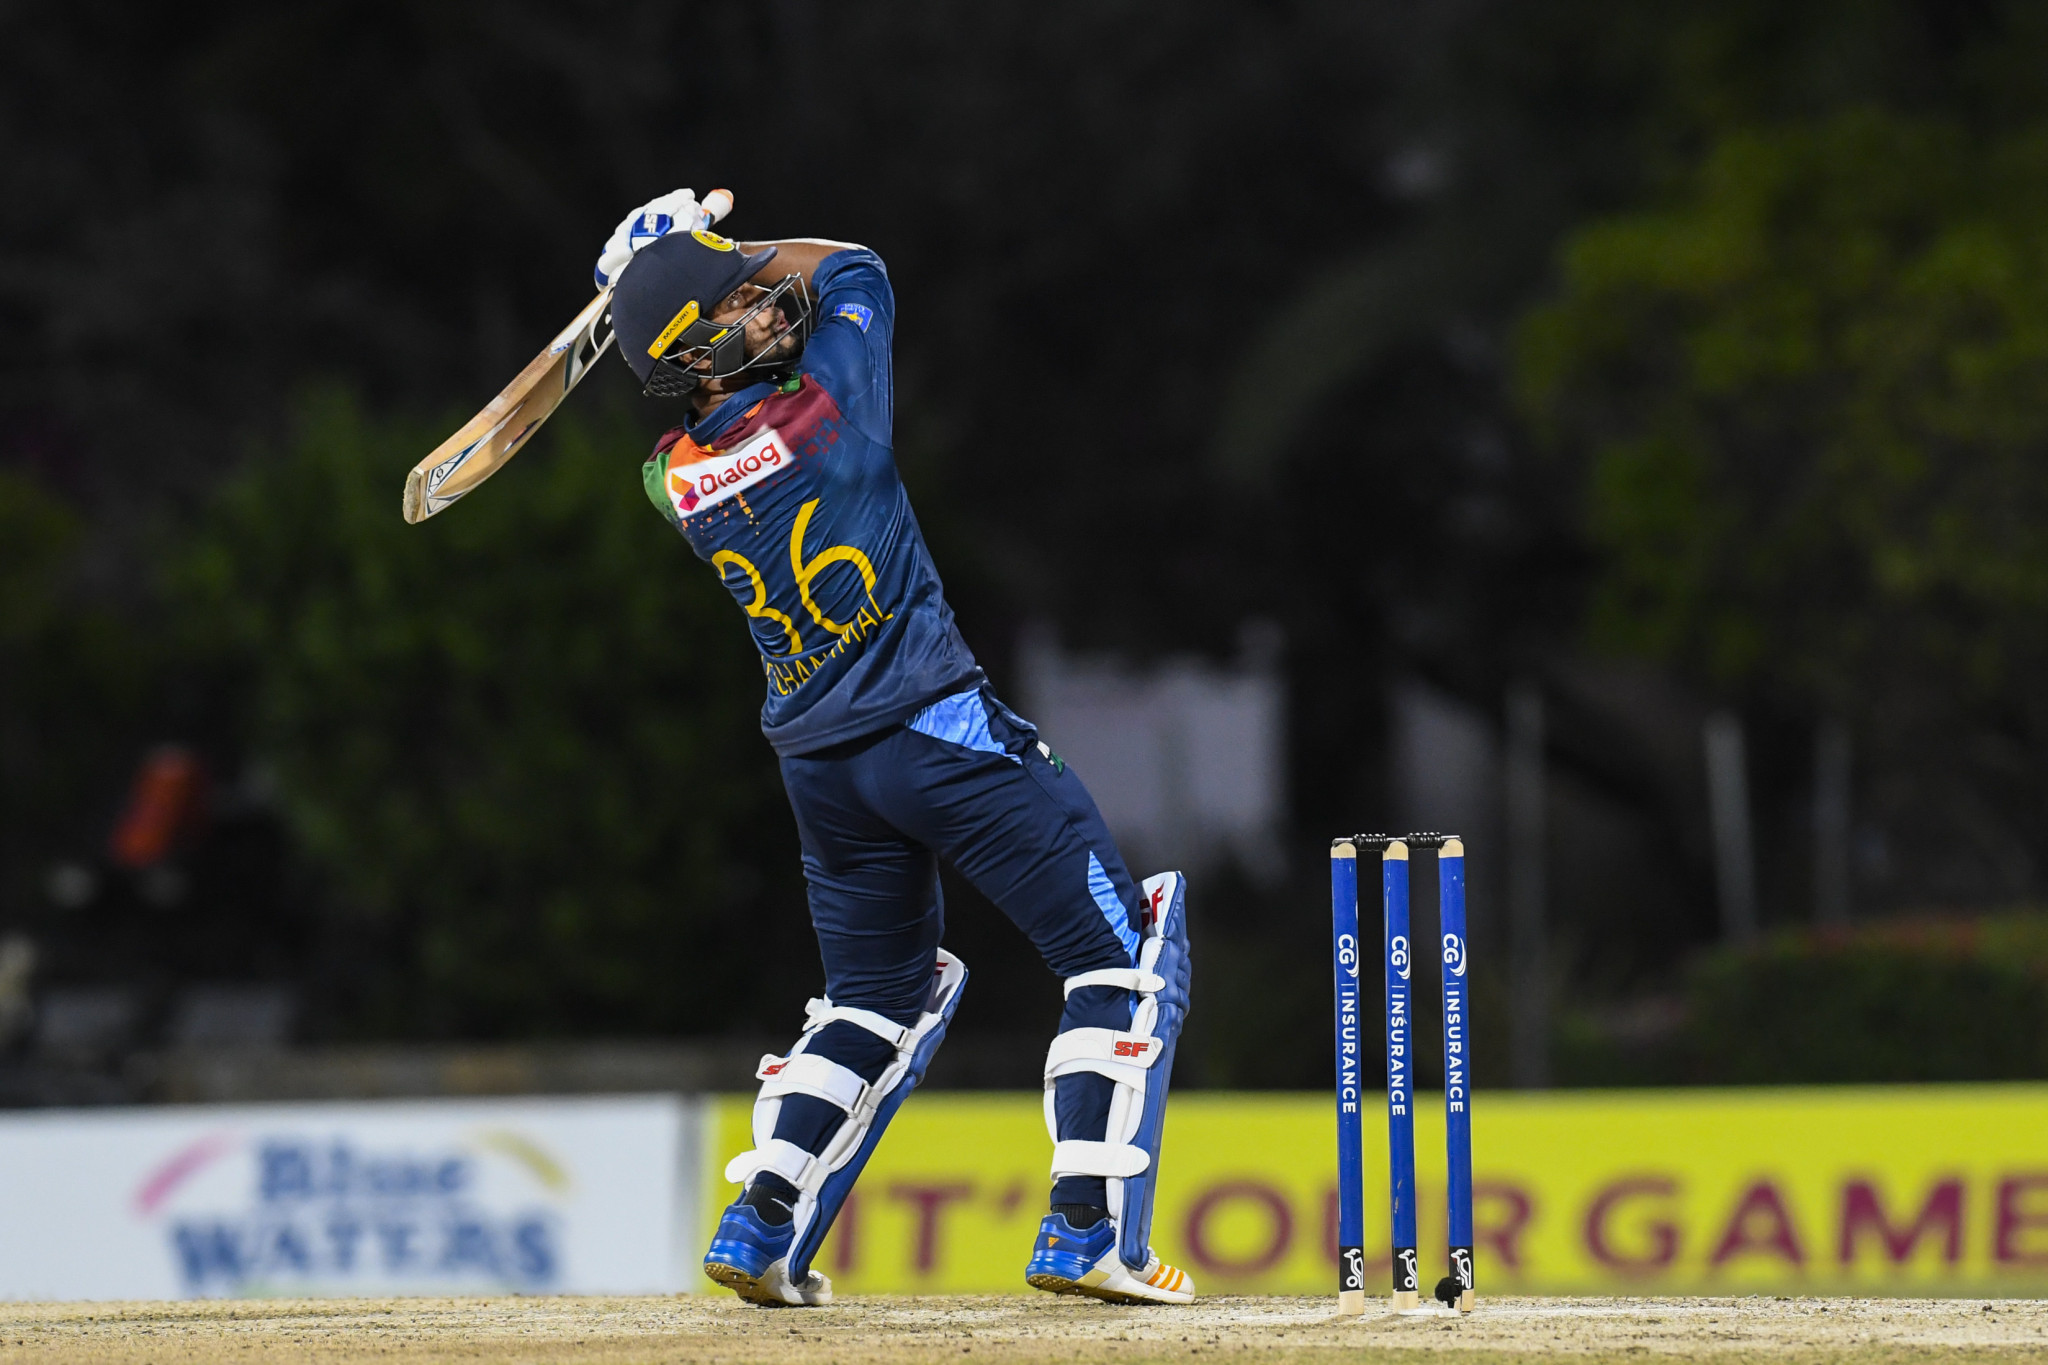 Asia Cup cricket tournament to be called off as Sri Lanka prepares to shut borders